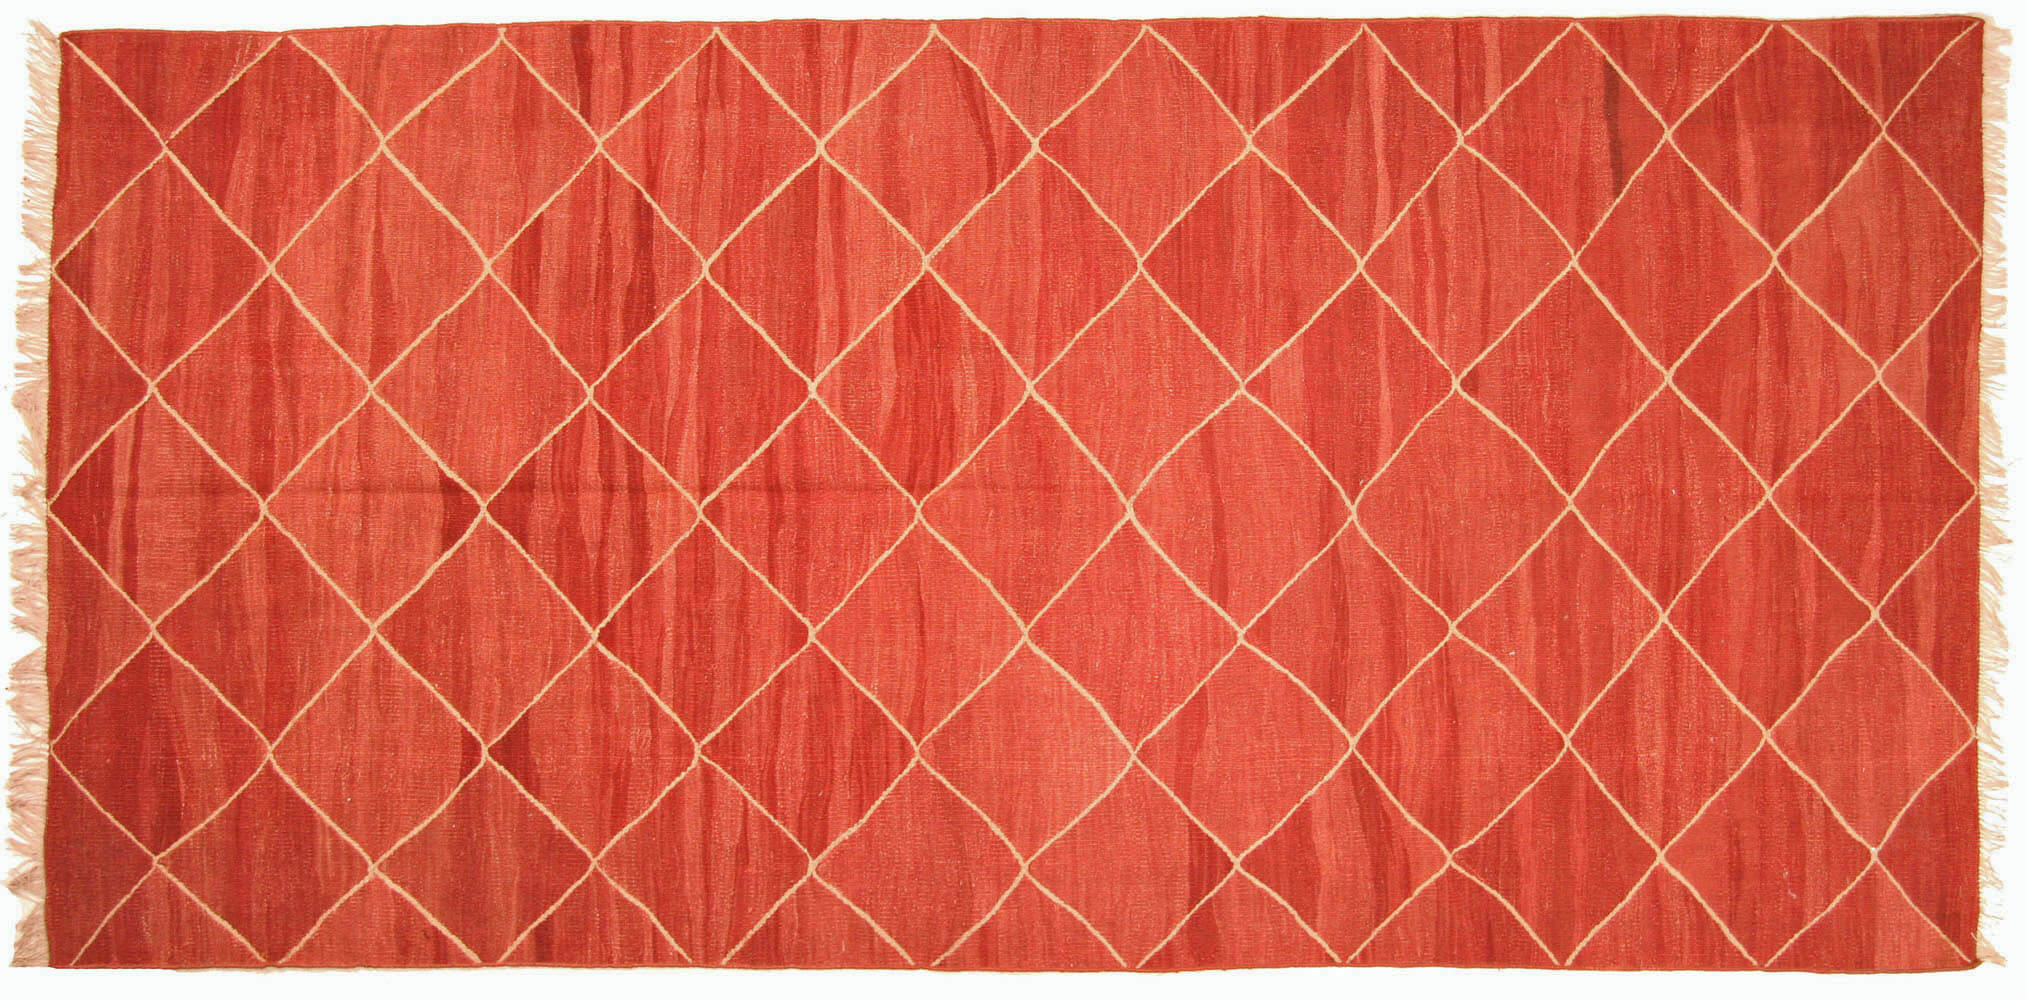 "Vintage Turkish Kilim - 4'5"" x 9'"